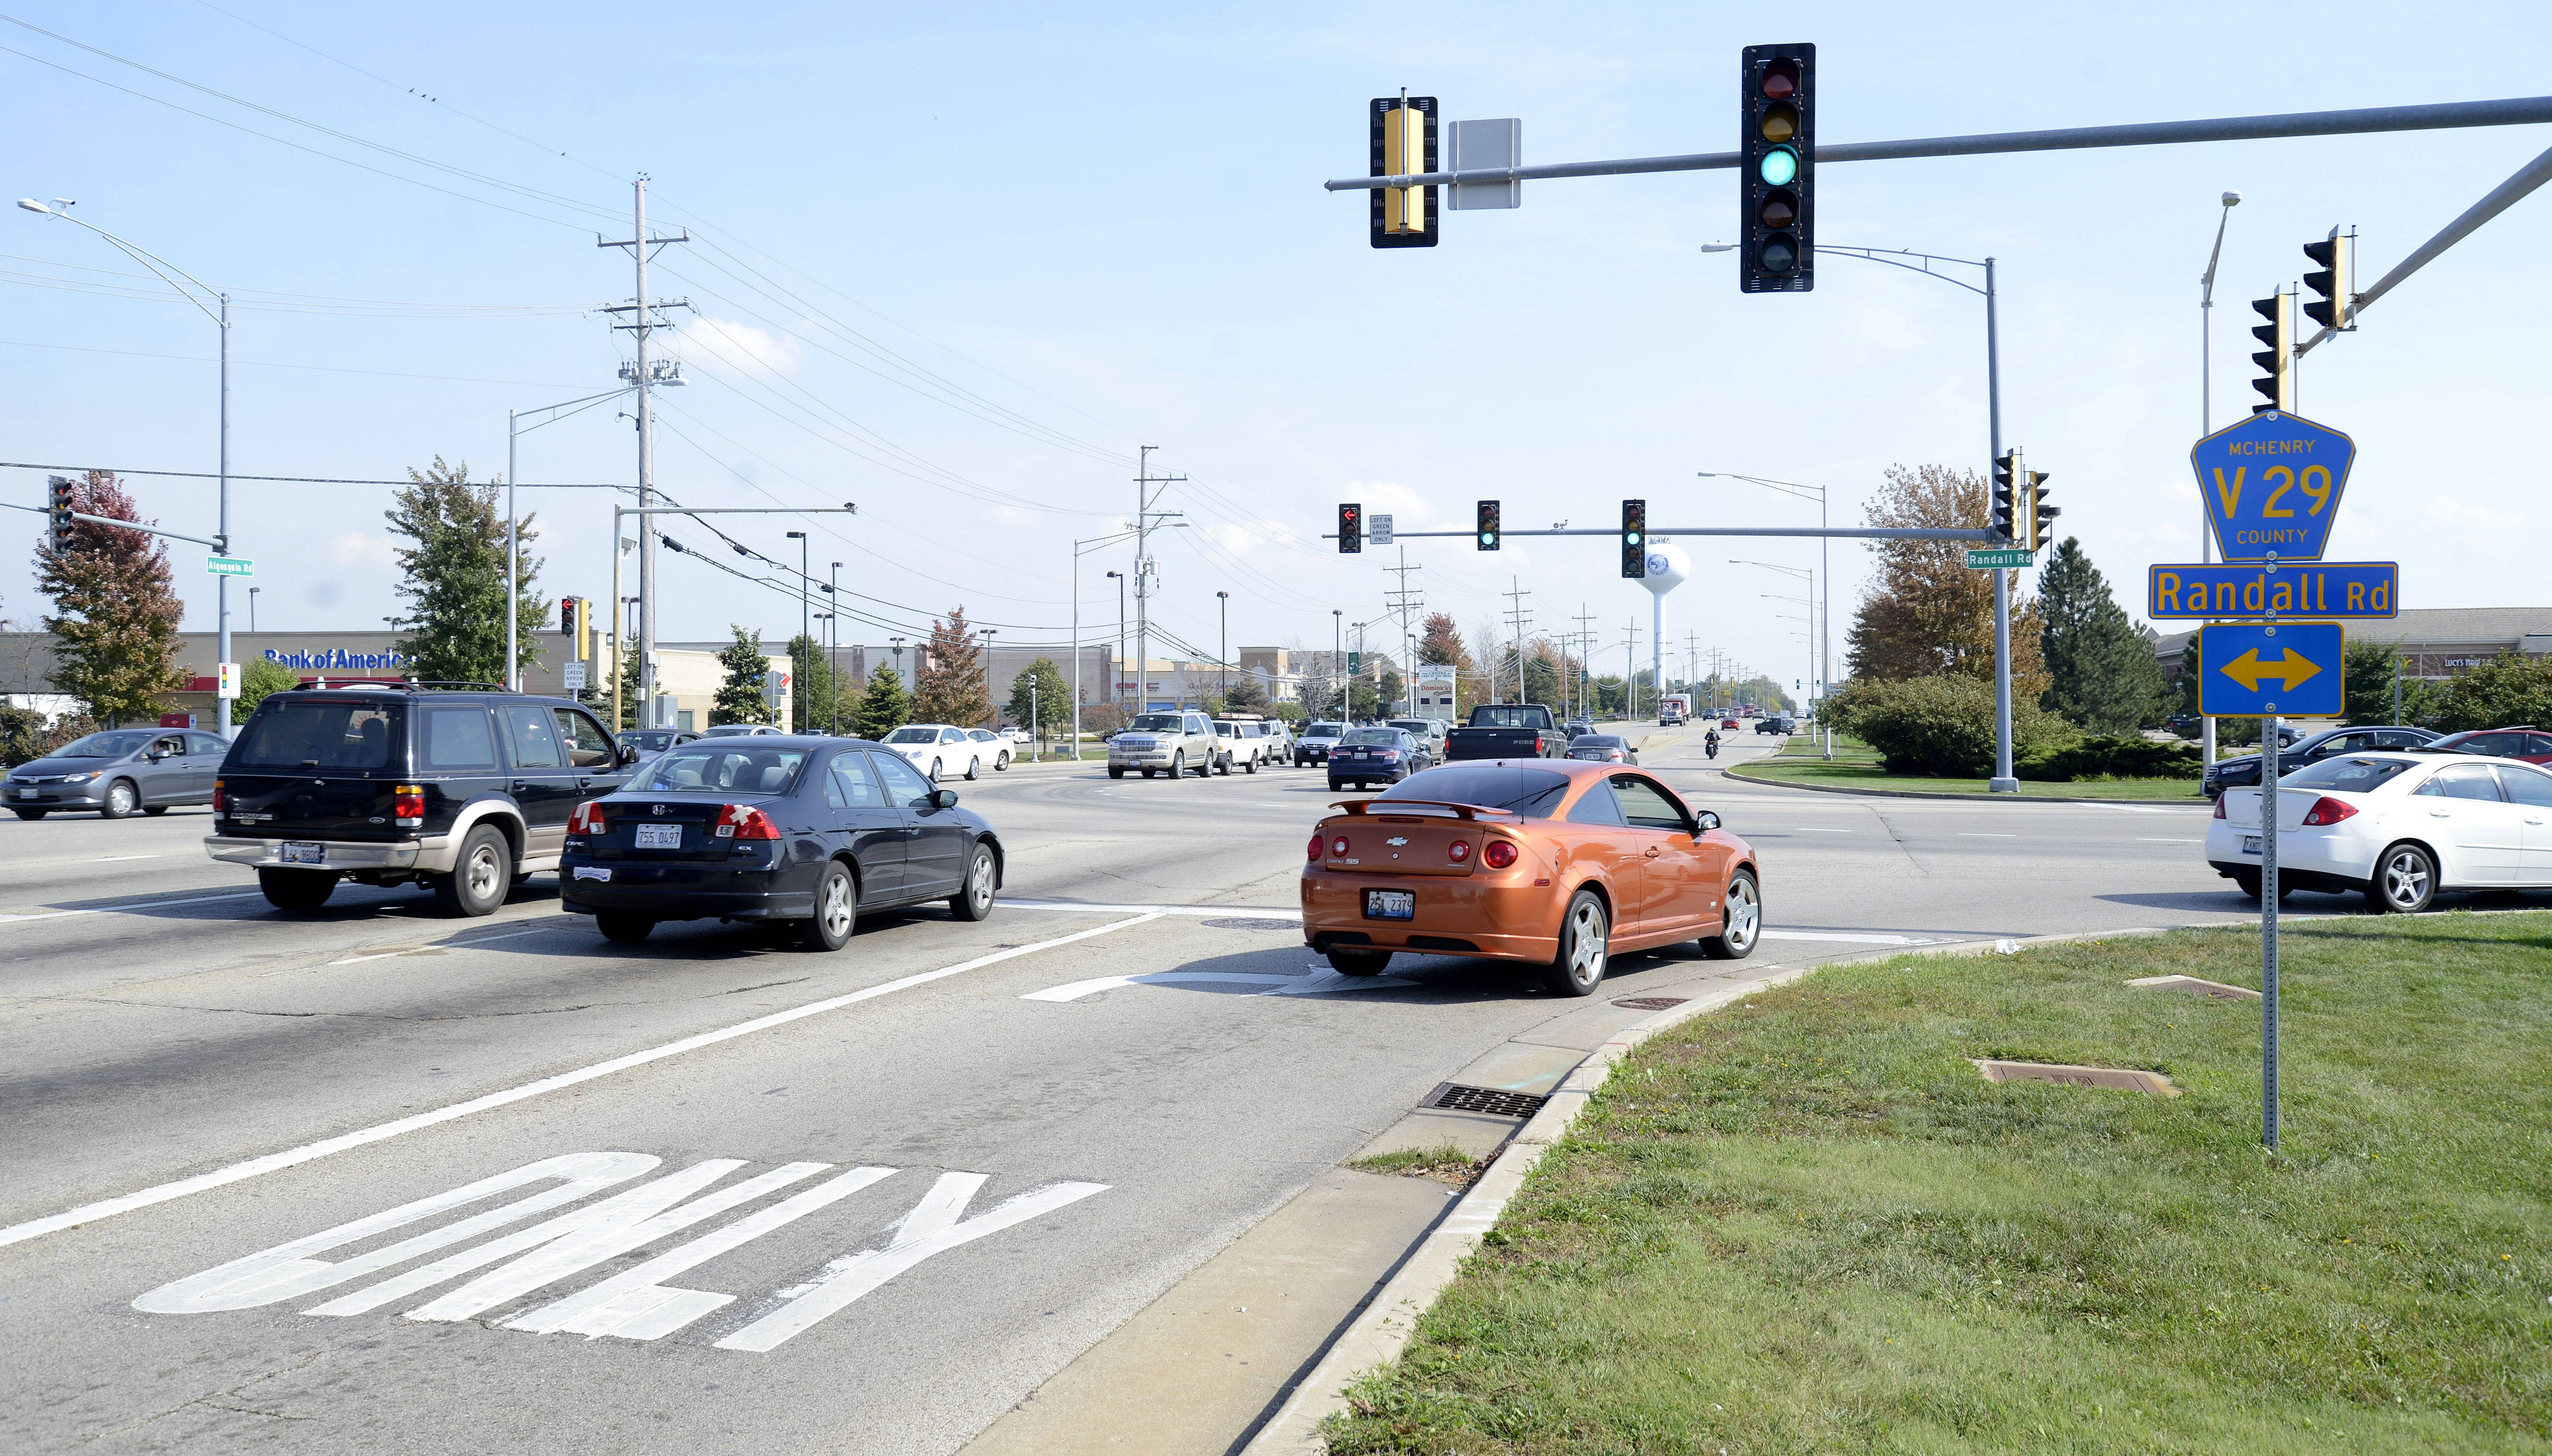 The intersection of Algonquin and Randall roads in Lake in the Hills is where McHenry County is proposing a continuous flow intersection that has some area businesses and property owners concerned.